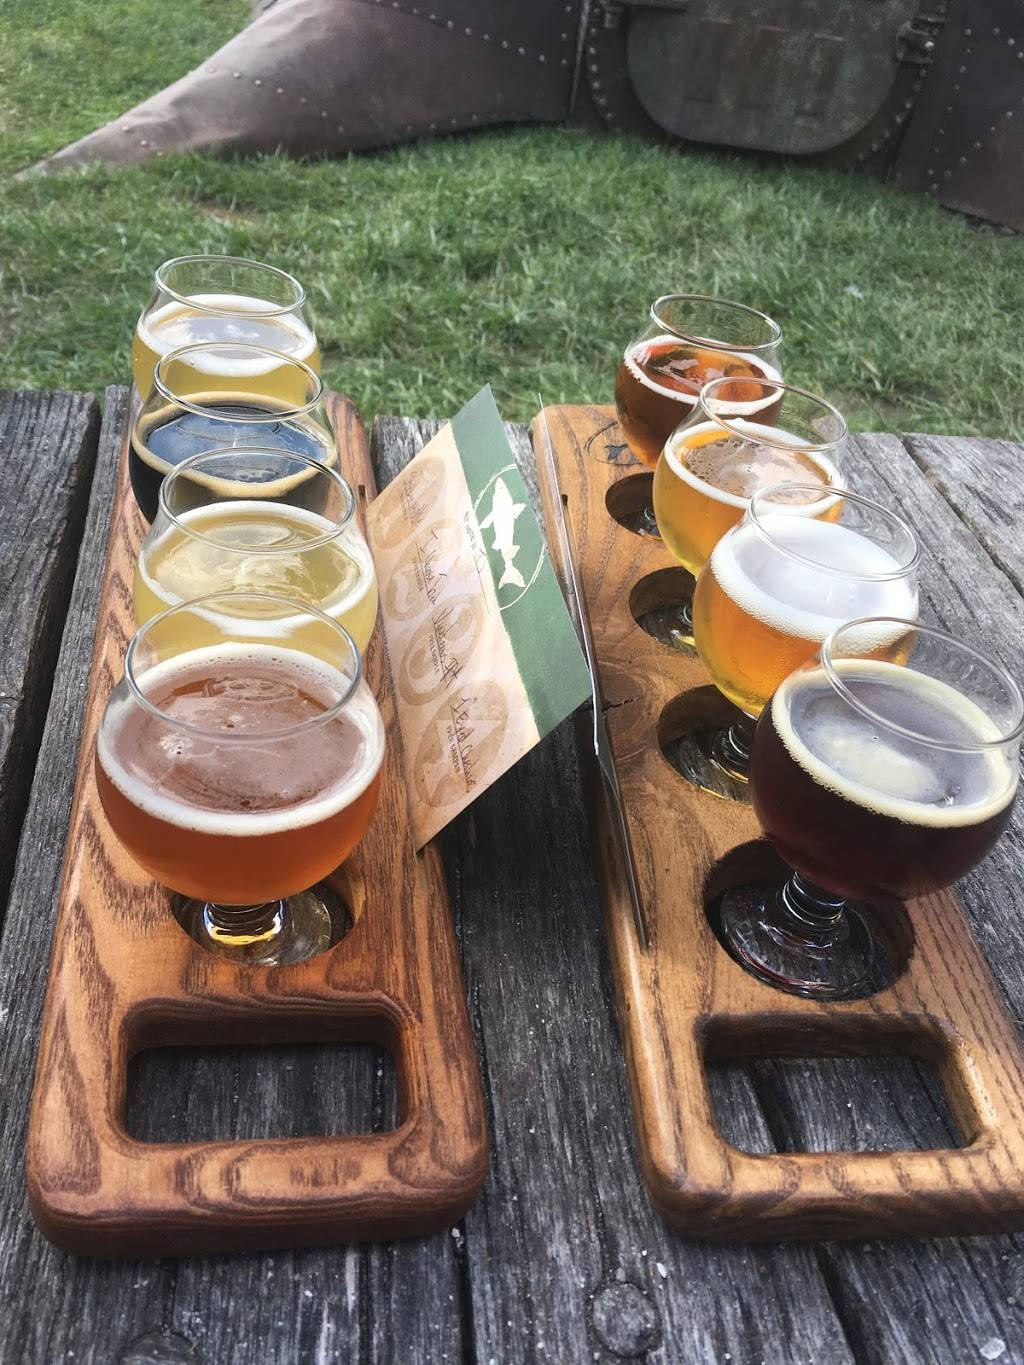 Dogfish Head Craft Brewery | restaurant | 6 Cannery Village Center, Milton, DE 19968, USA | 3026841000 OR +1 302-684-1000